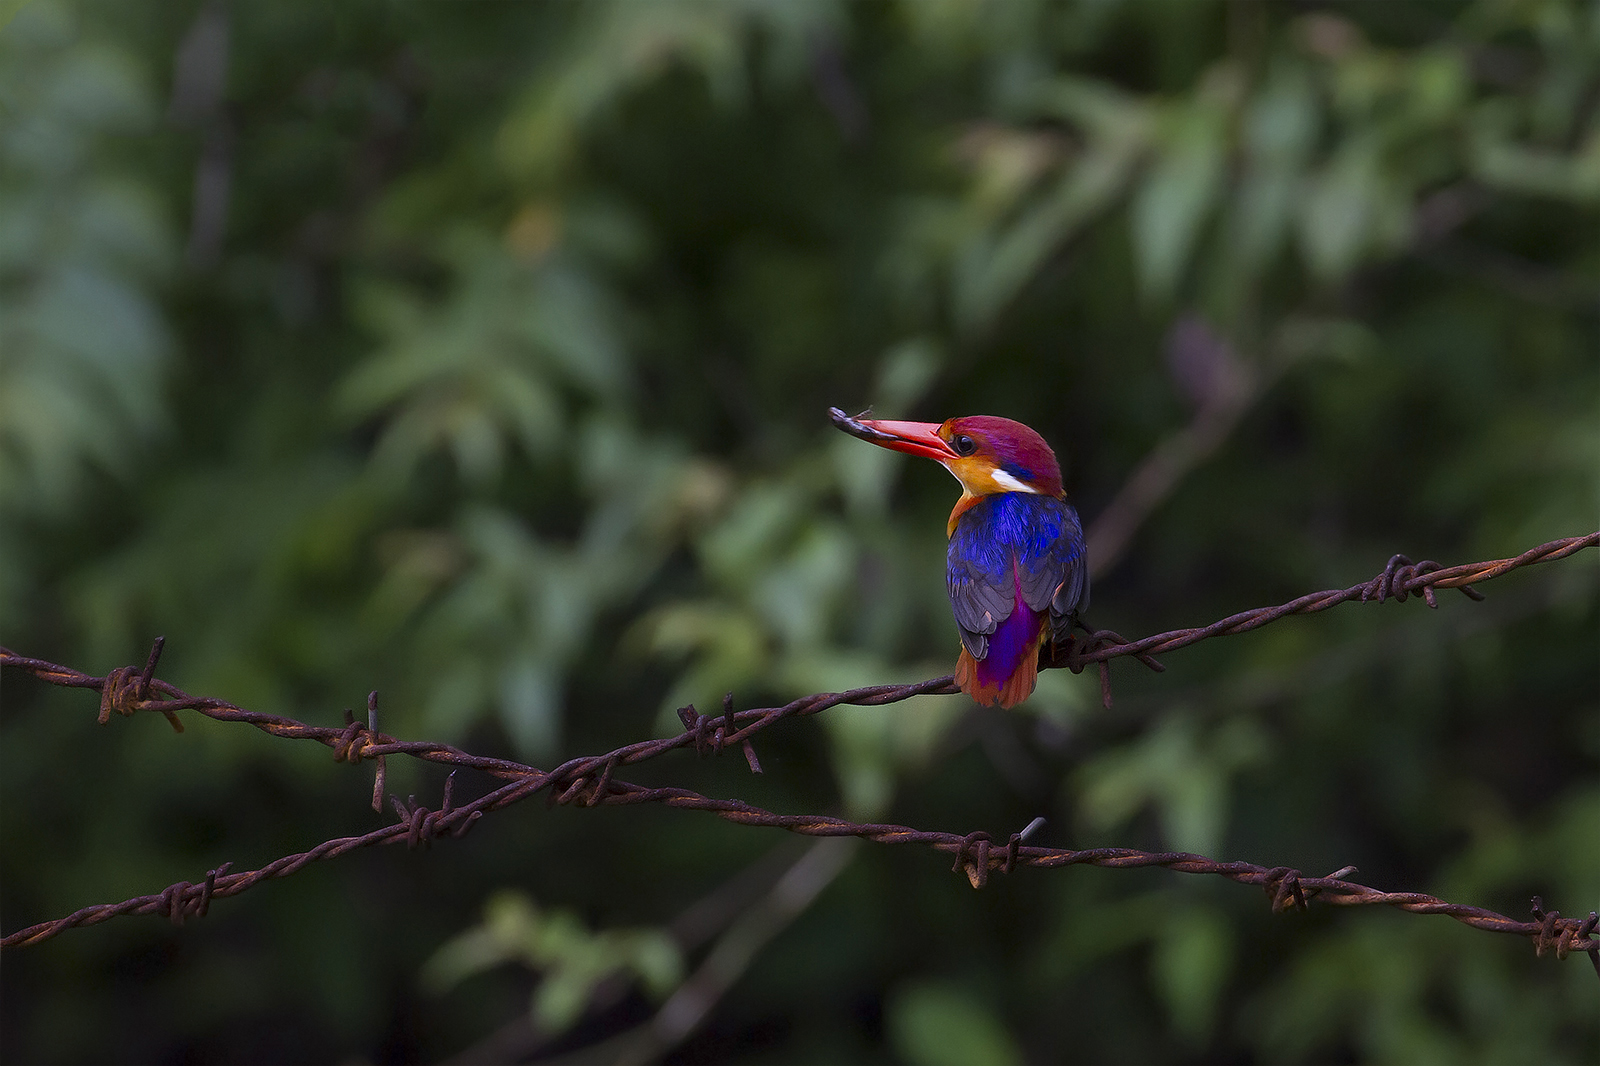 A bird in the National Park